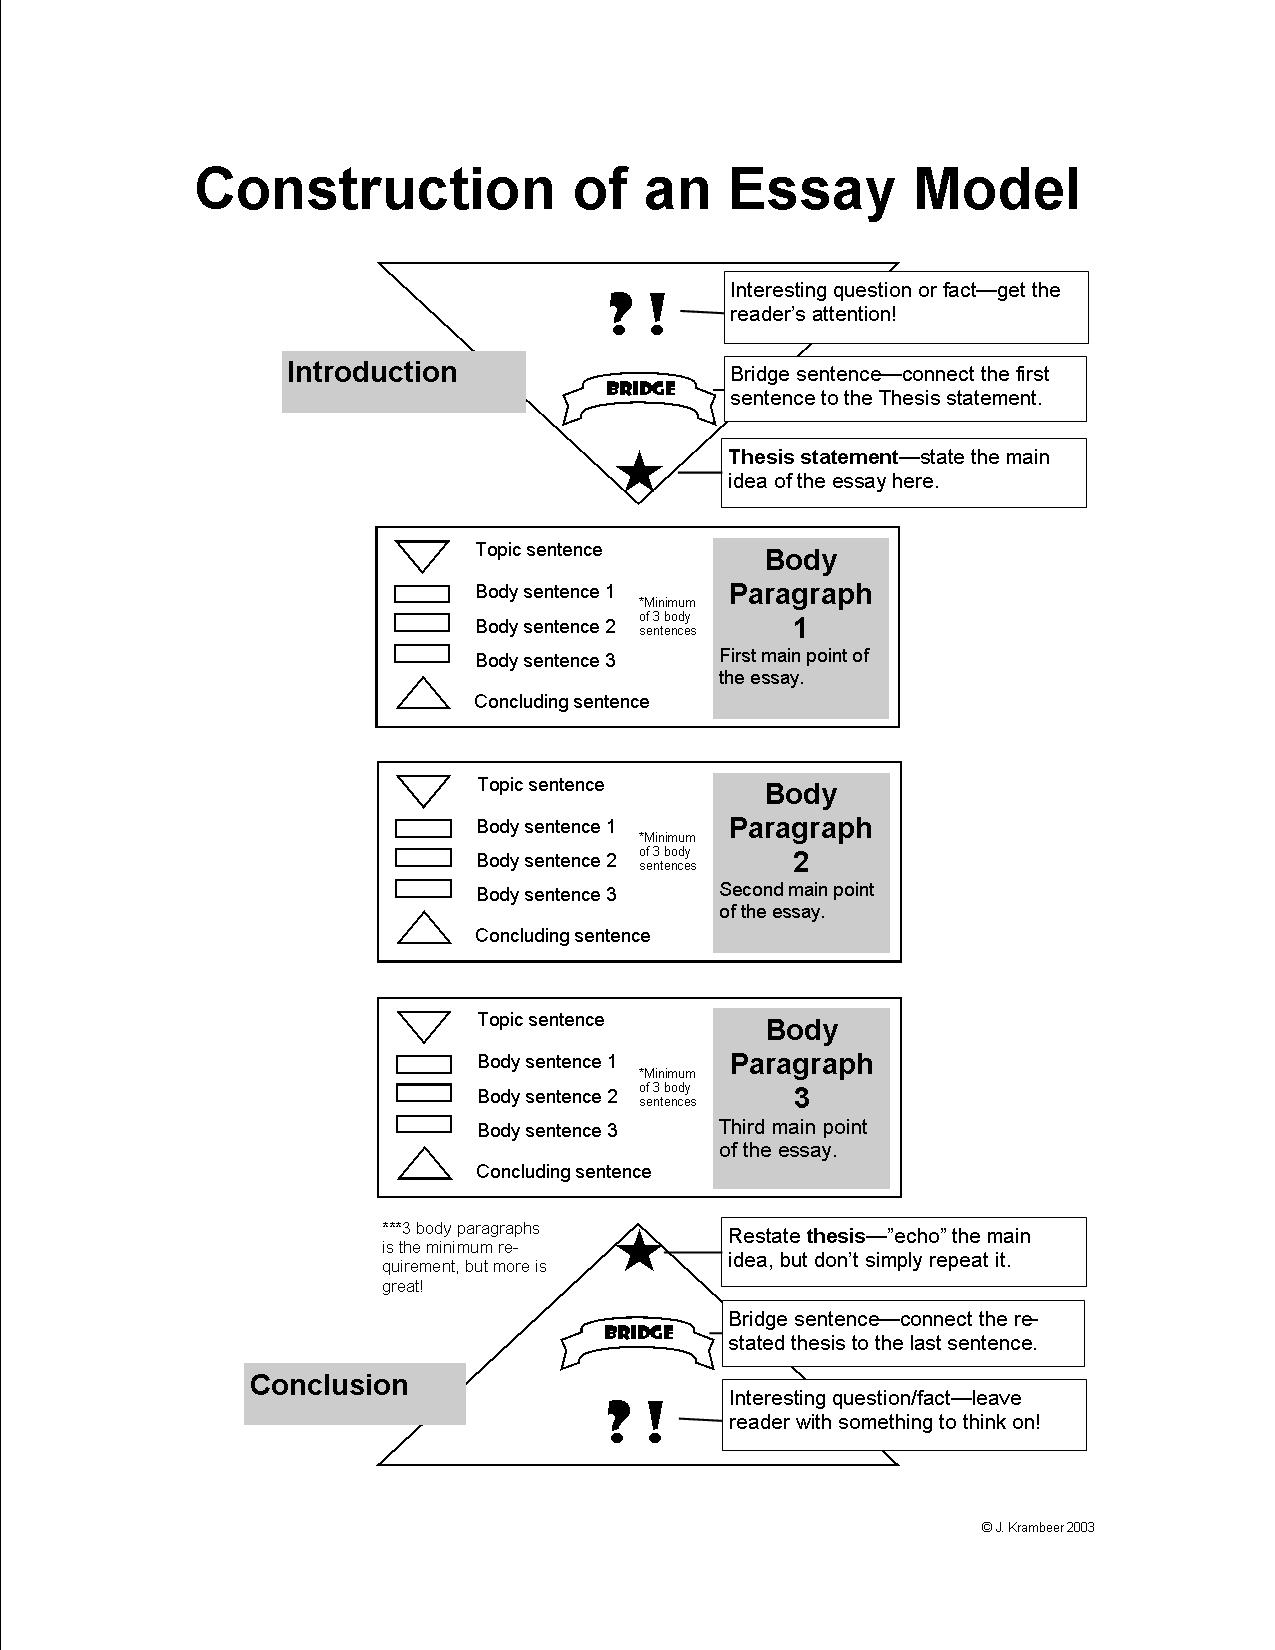 model essays model essays aqua ip model essays aqua ip model model essay oglasi coschool is cool essay modelessay model